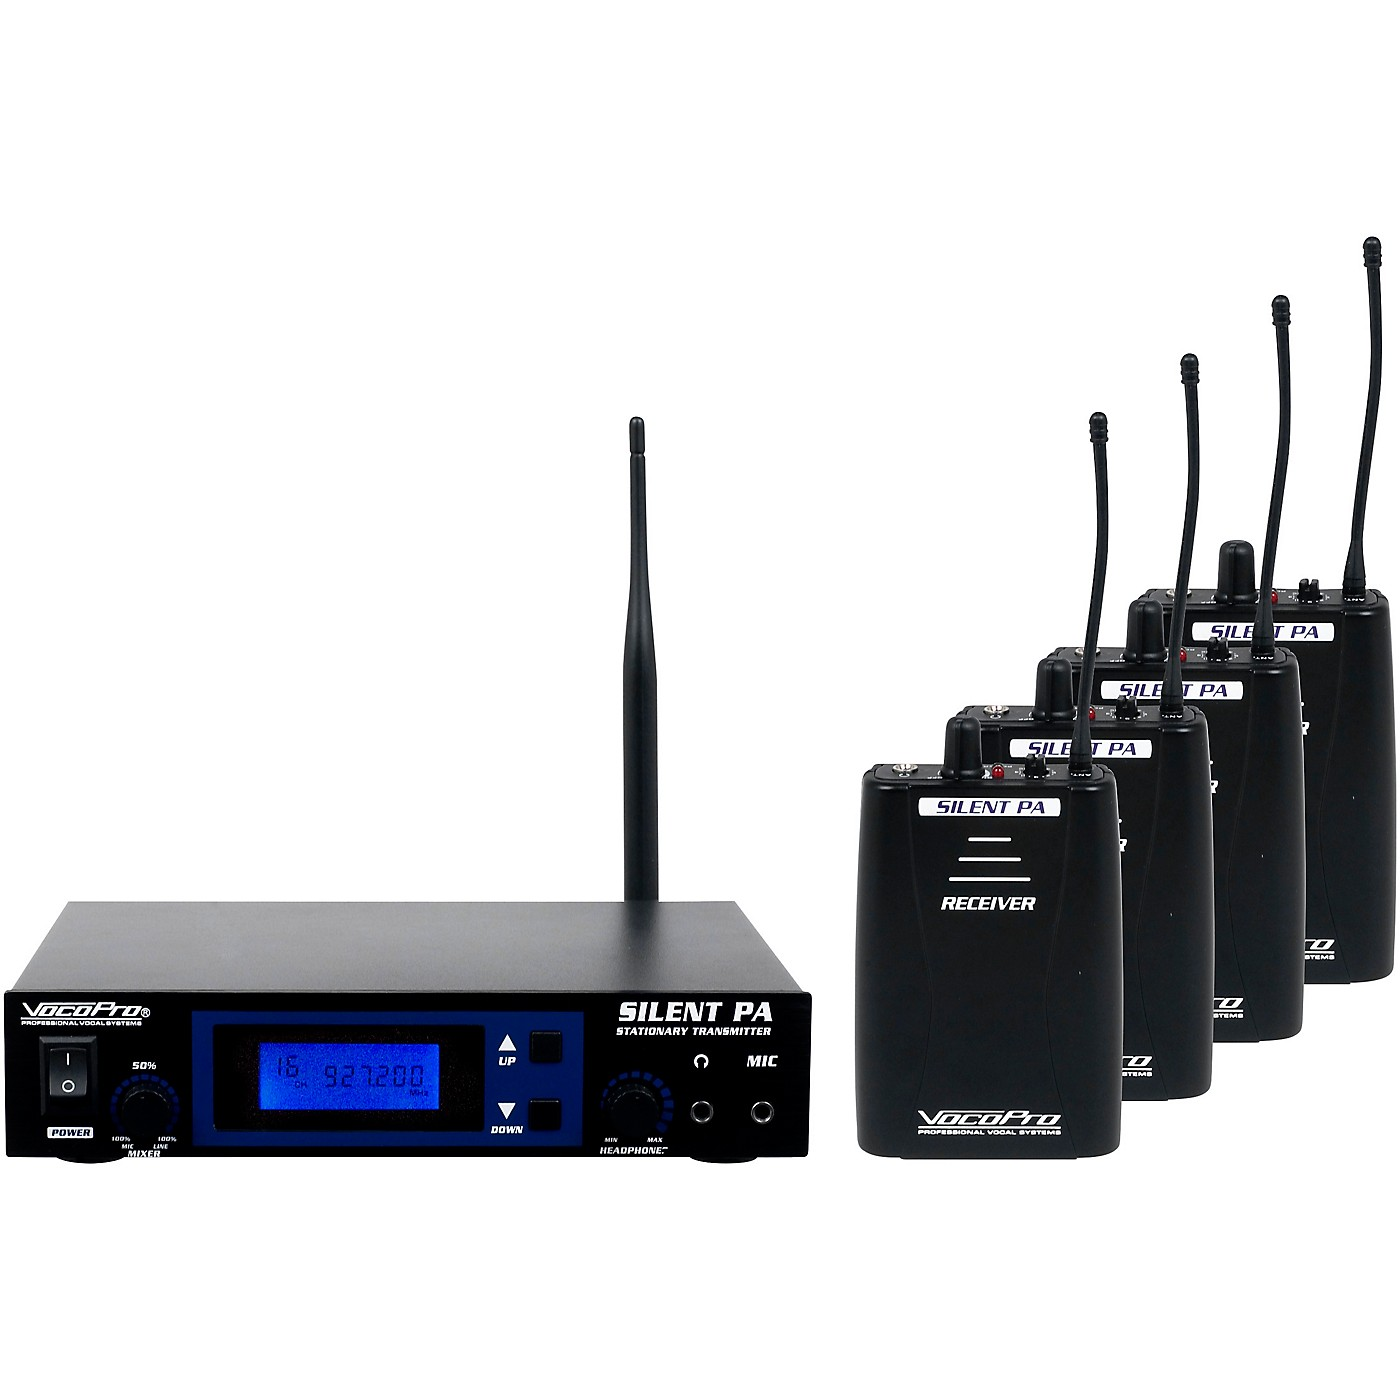 VocoPro SilentPA-PRACTICE 16CH UHF Wireless Audio Broadcast System (Stationary Transmitter with four bodypack receivers) thumbnail